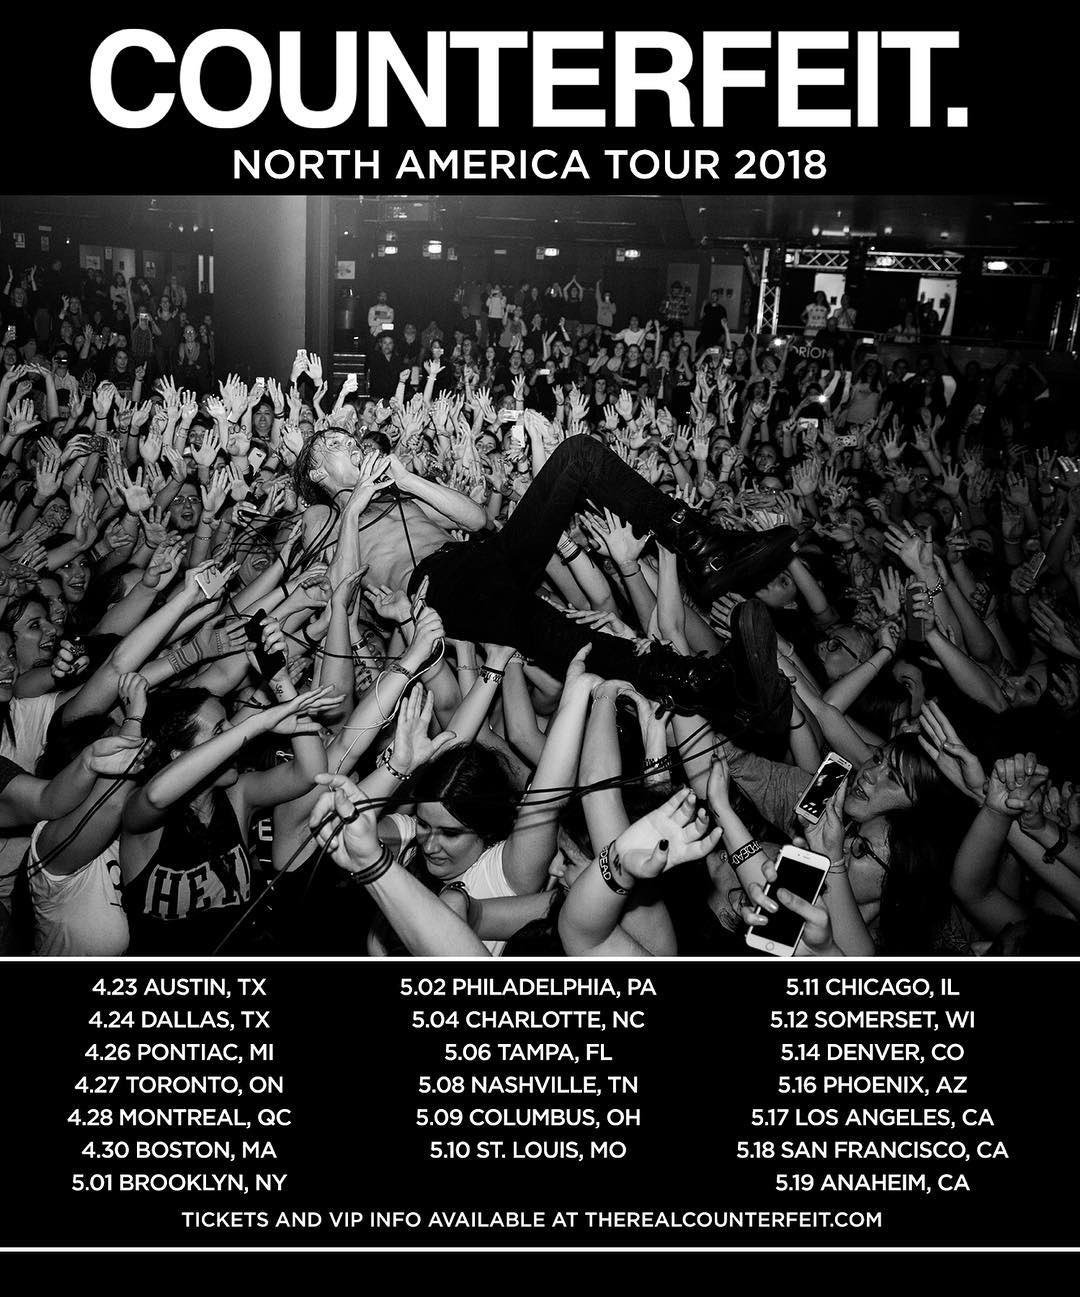 THIS STARTS IN A WEEK! So pumped for our first US tour. Don't sleep on it. https://t.co/ArEdyMcxKq for tickets https://t.co/iXsicW780i